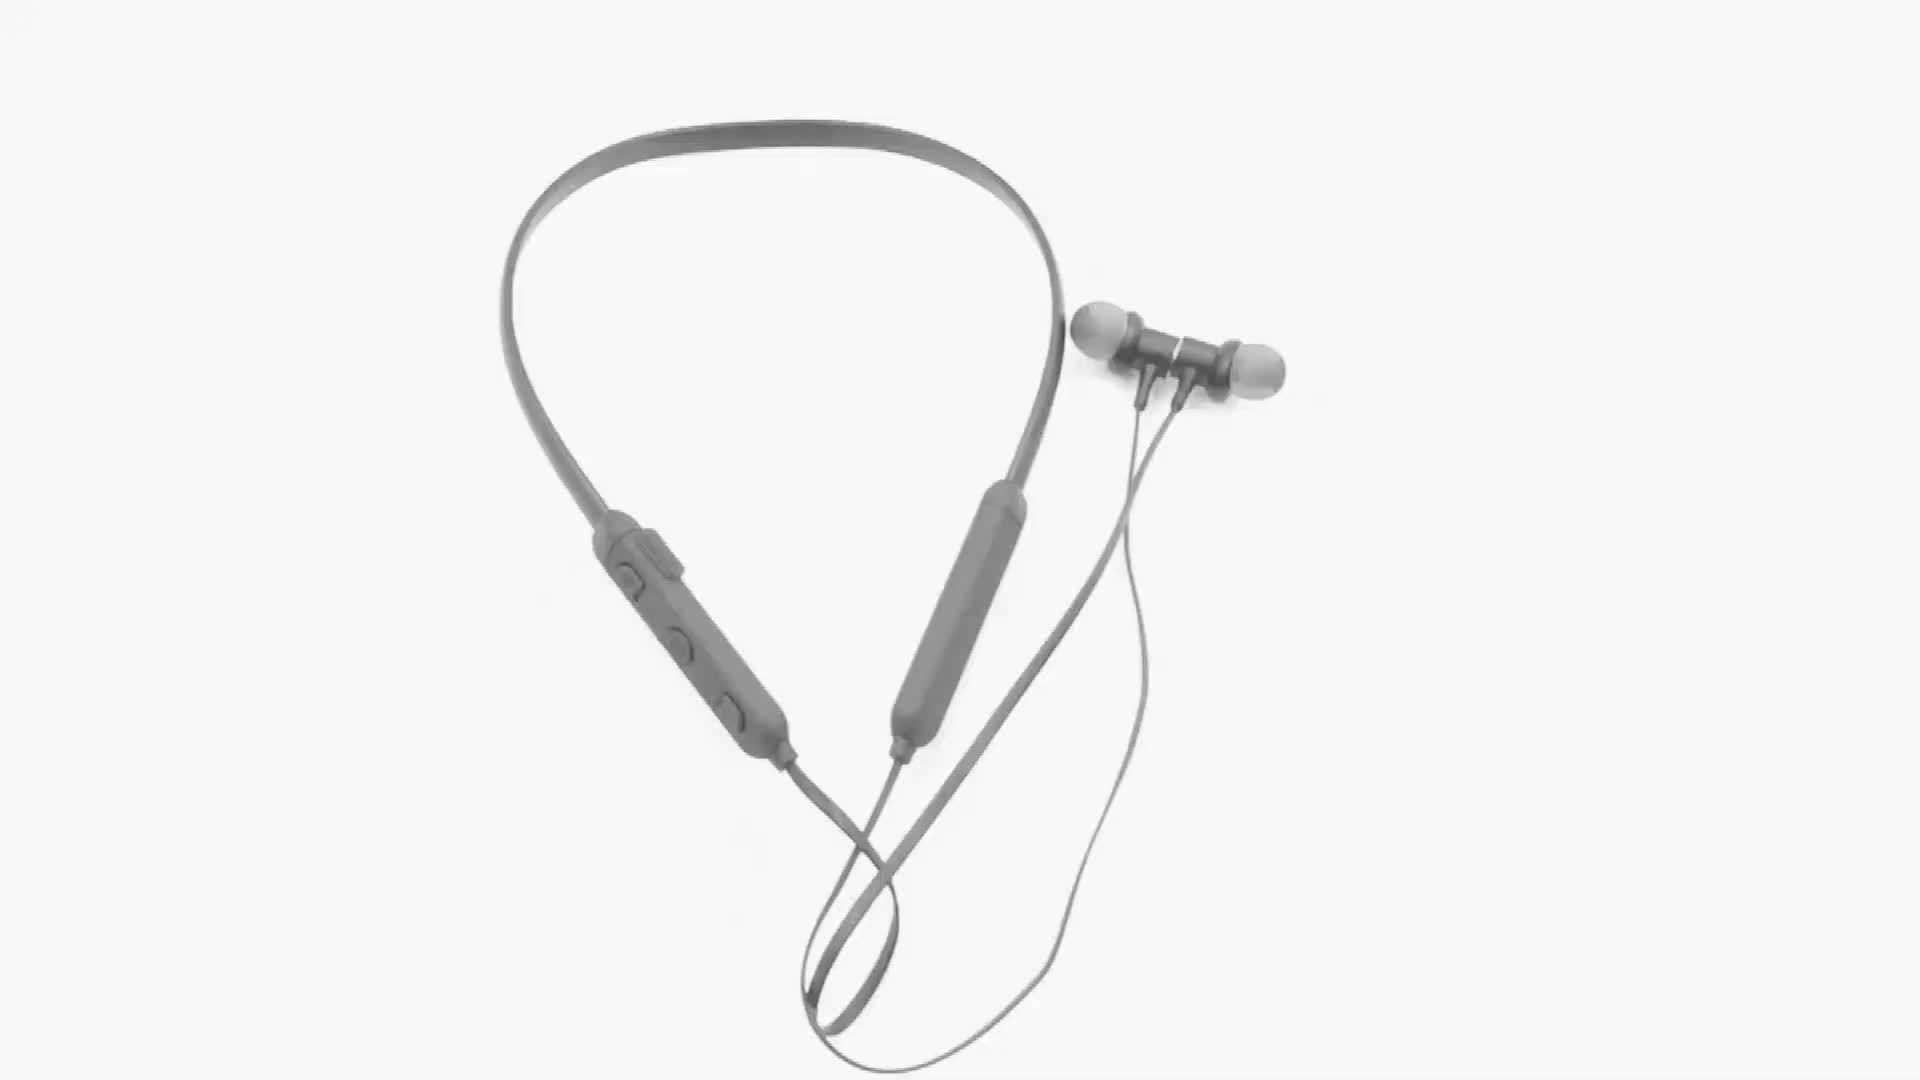 Shenzhen Wholesale Earphone With Microphone Headset With